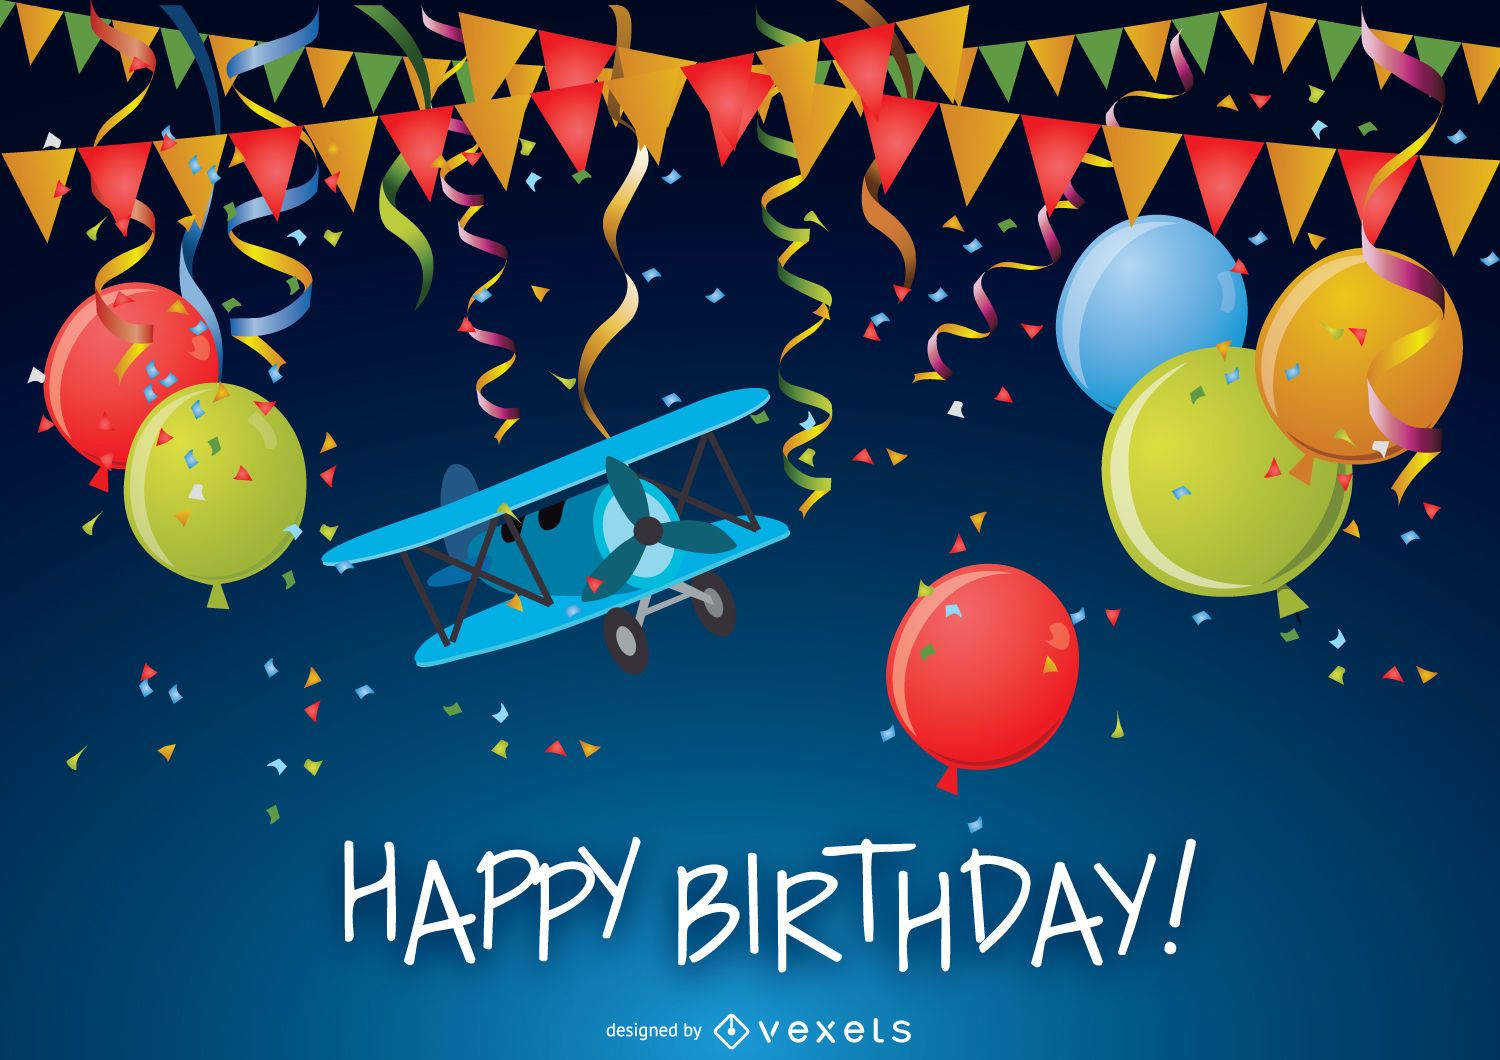 Happy birthday funny card vector download happy birthday funny card download large image 833x591px license image user bookmarktalkfo Choice Image